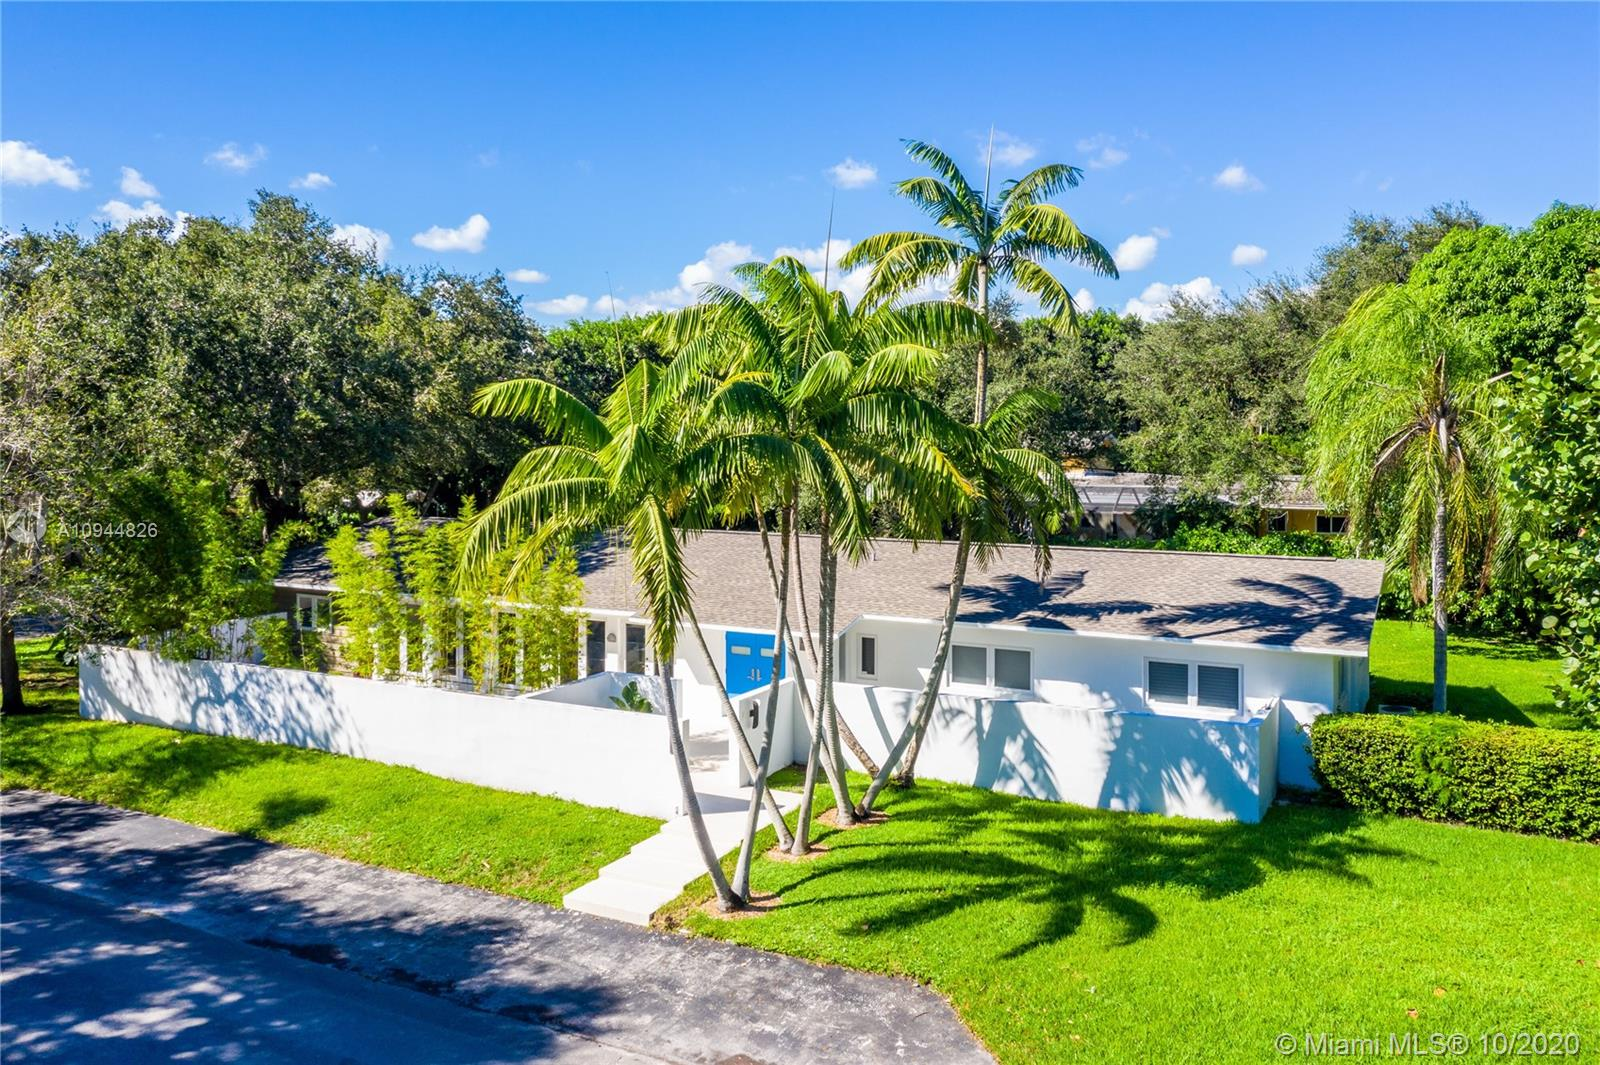 5875 SW 100th St, Pinecrest, Florida 33156, 5 Bedrooms Bedrooms, ,3 BathroomsBathrooms,Residential,For Sale,5875 SW 100th St,A10944826